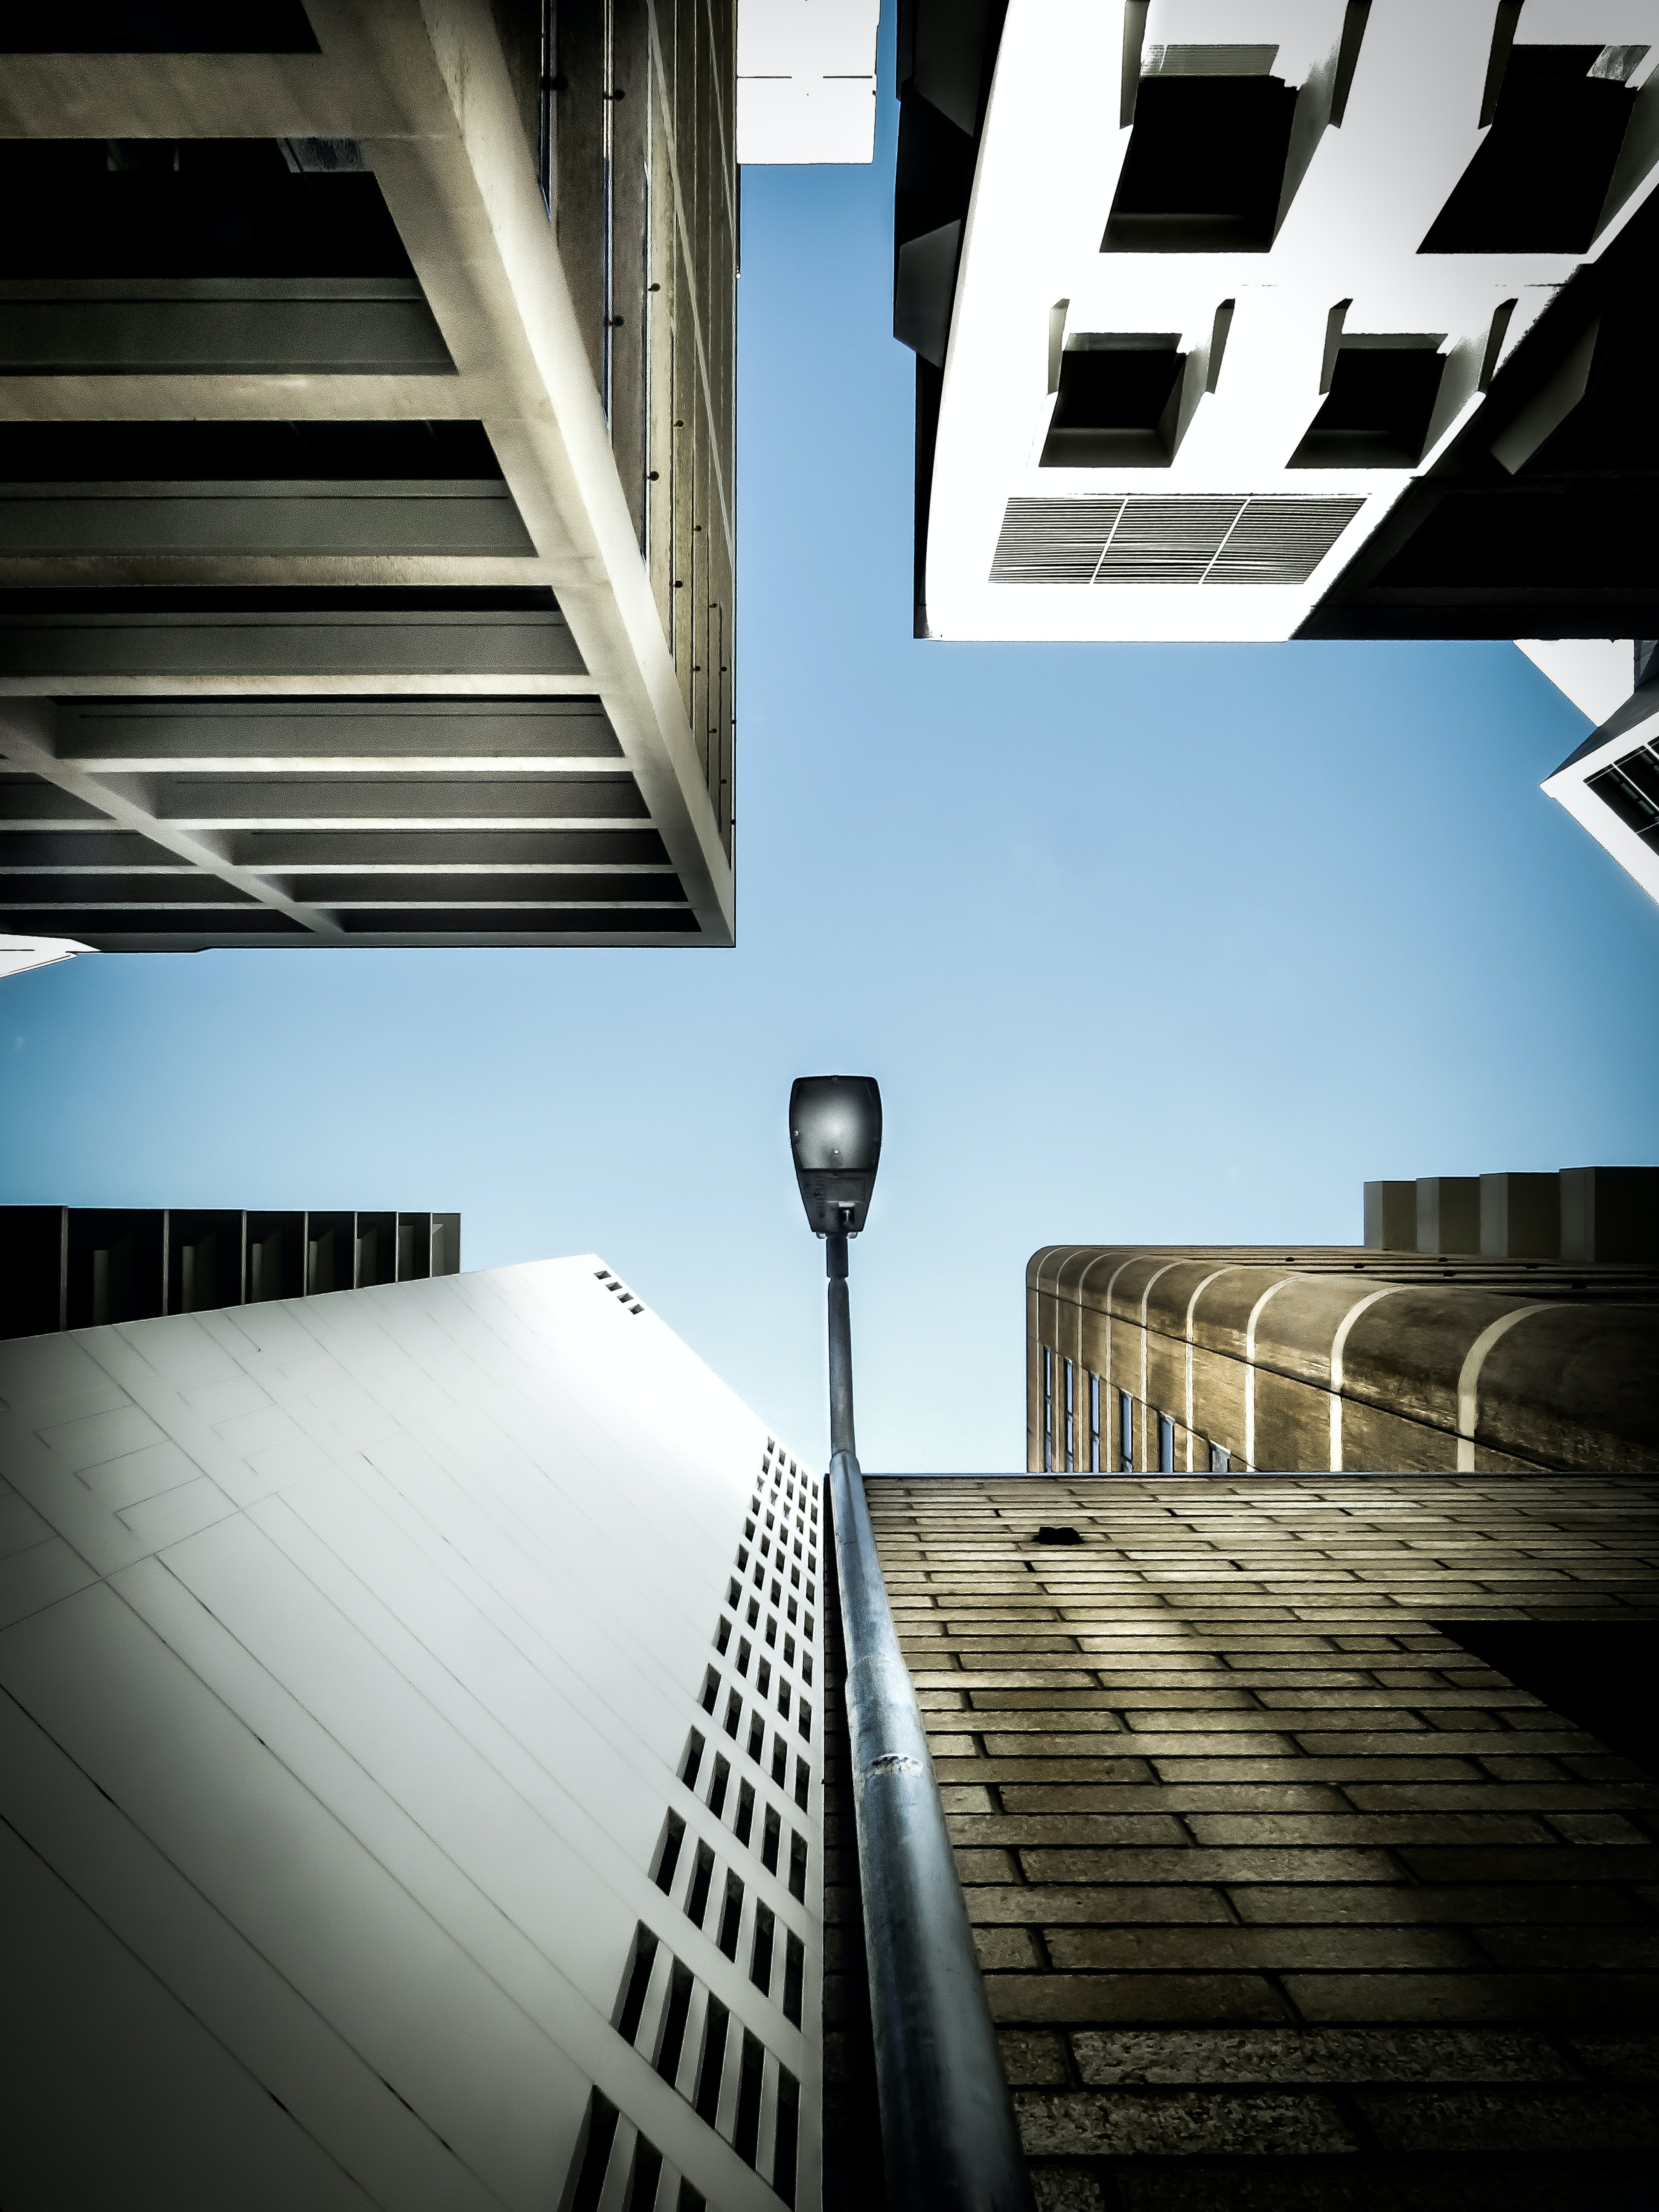 A low-angle shot of a lamppost adjacent to a building facade